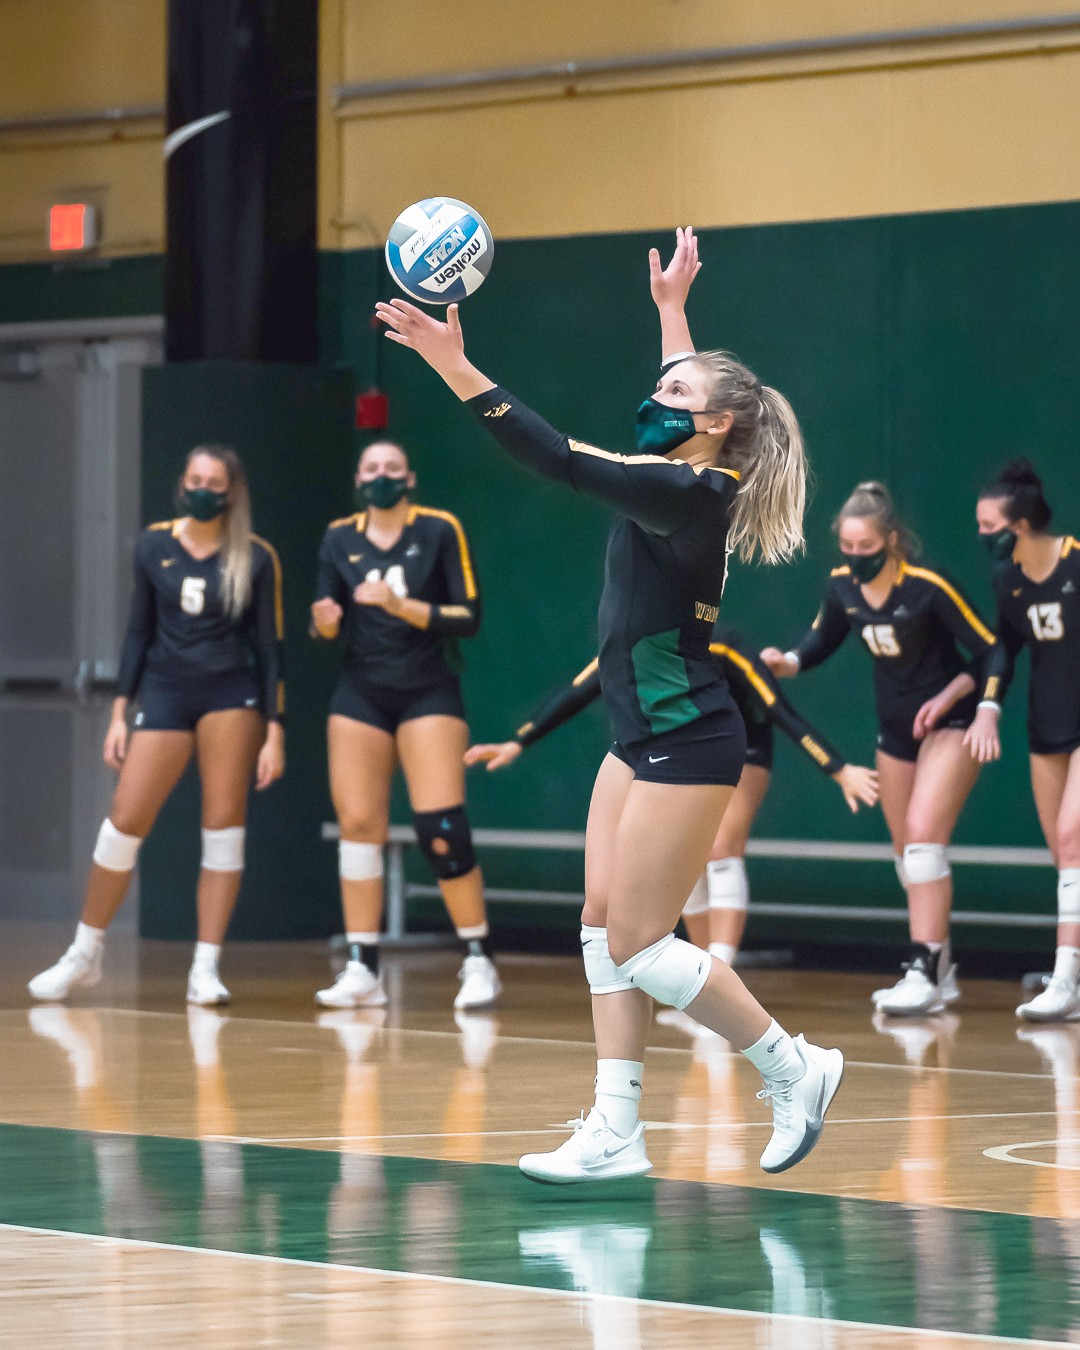 Wright State University senior Mallory Ladd (Clay) works on her serve. (Photo by Matt Barnes/Wright State Athletics)